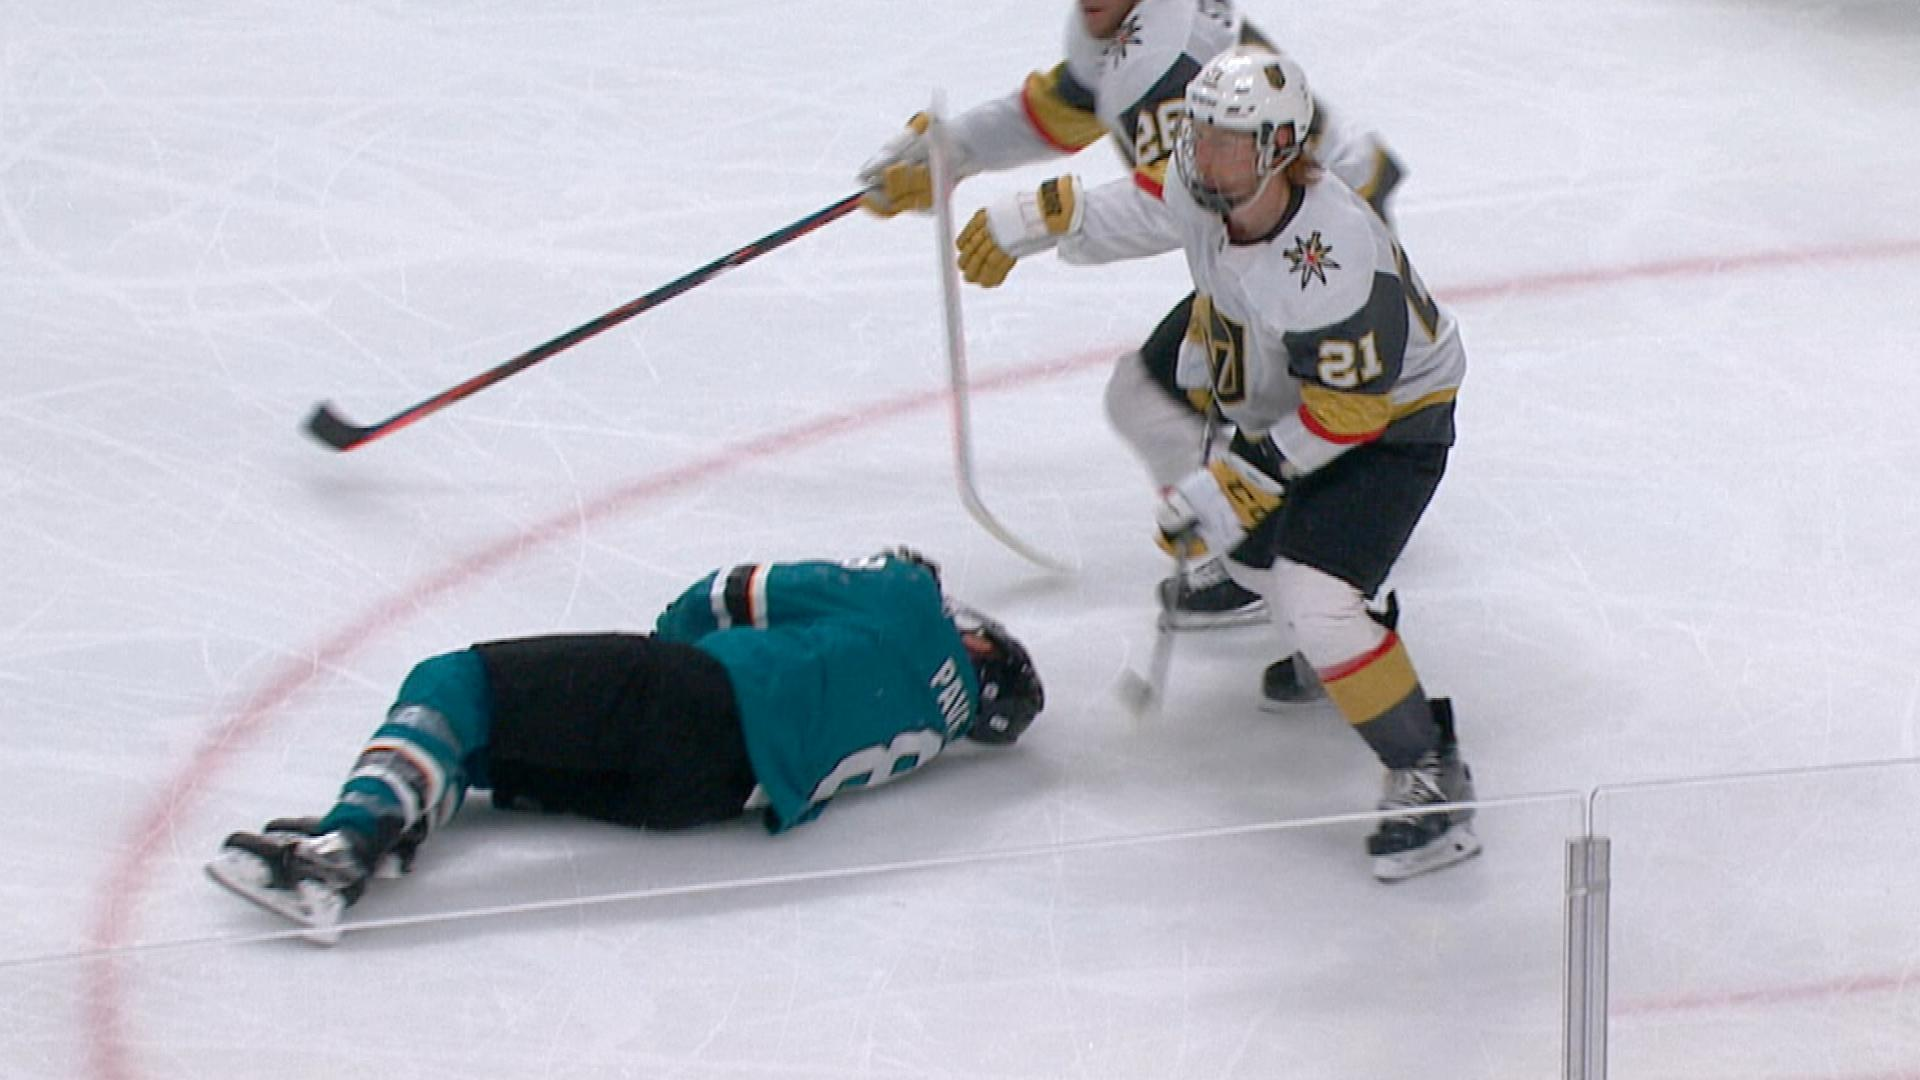 Golden Knights' Cody Eakin ejected for high stick on Sharks' Joe Pavelski